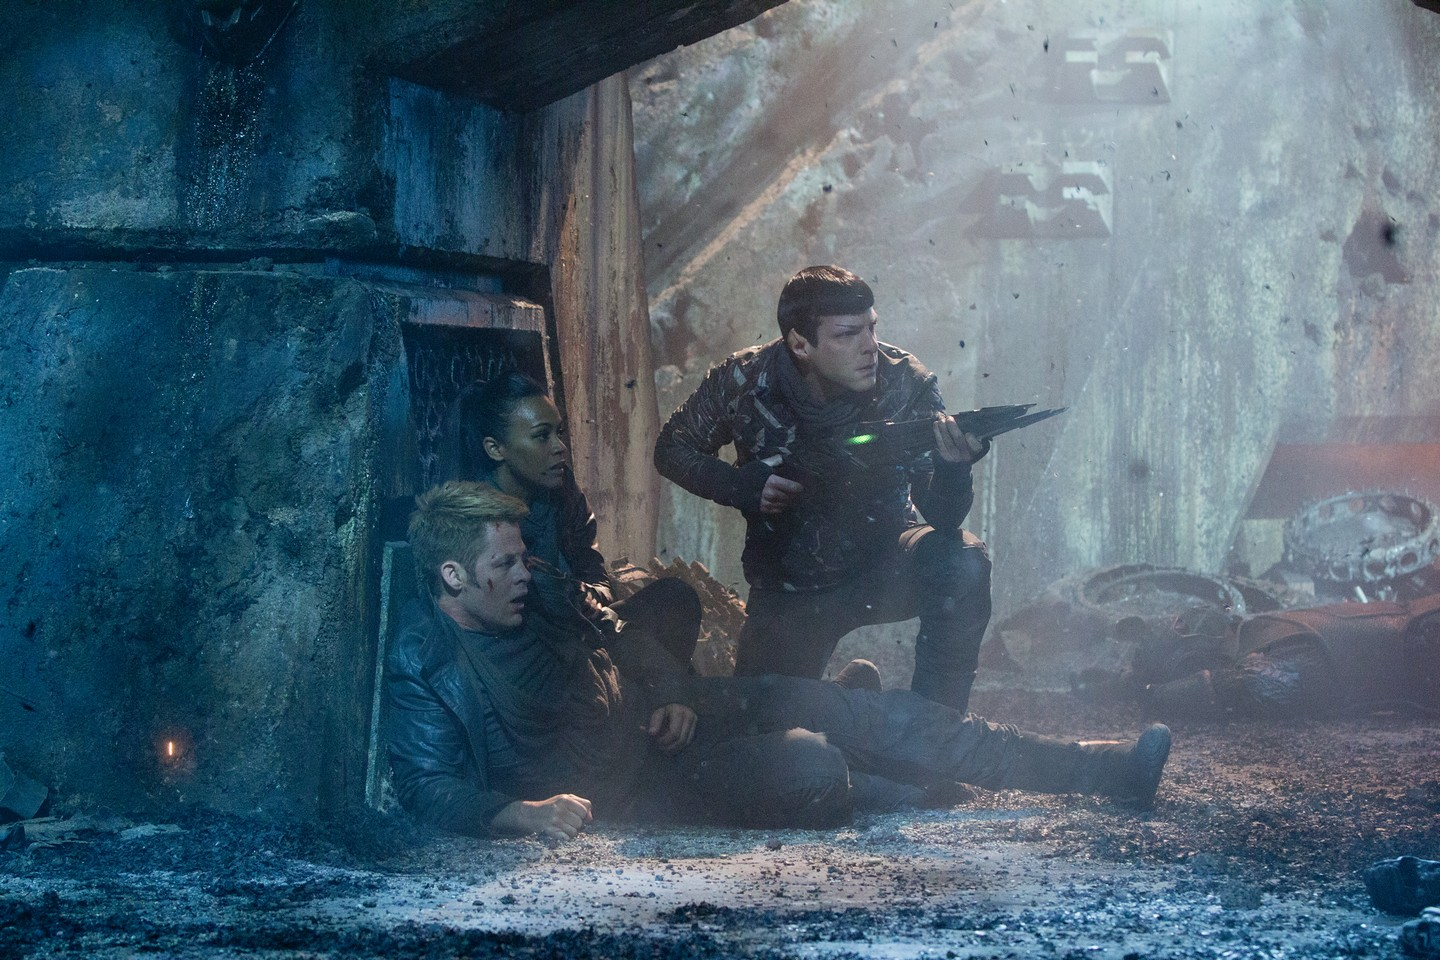 Spock, uhura and Kirk in a firefight